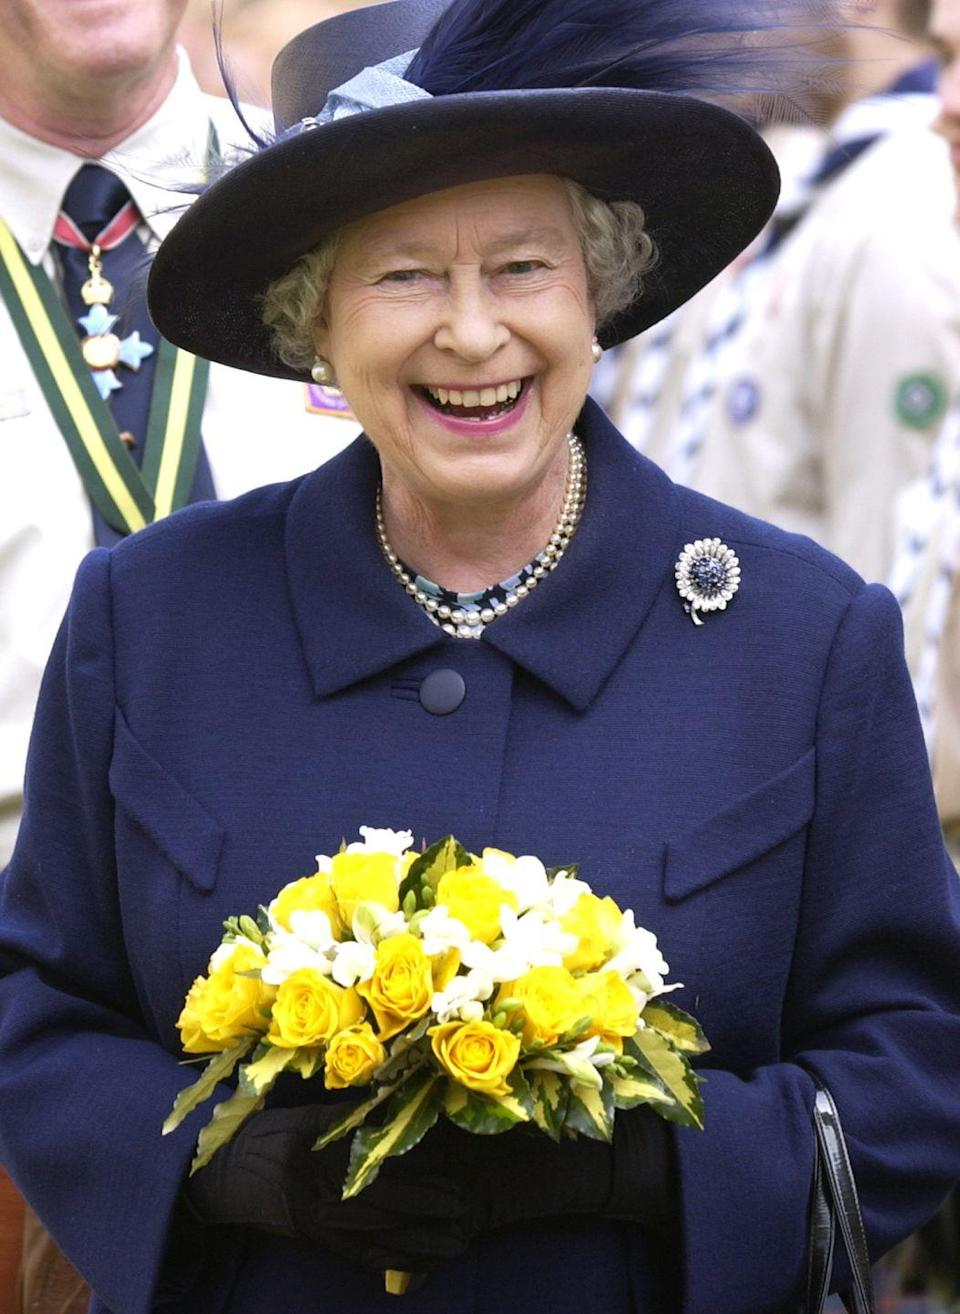 <p>The Sapphire Chrysanthemum Brooch has been in the Queen's collection since her days as a princess and is a rare piece that predates her ascension to the throne. She received it as a gift in 1946 when she launched an oil tanker named the <em>British Princess.</em></p>